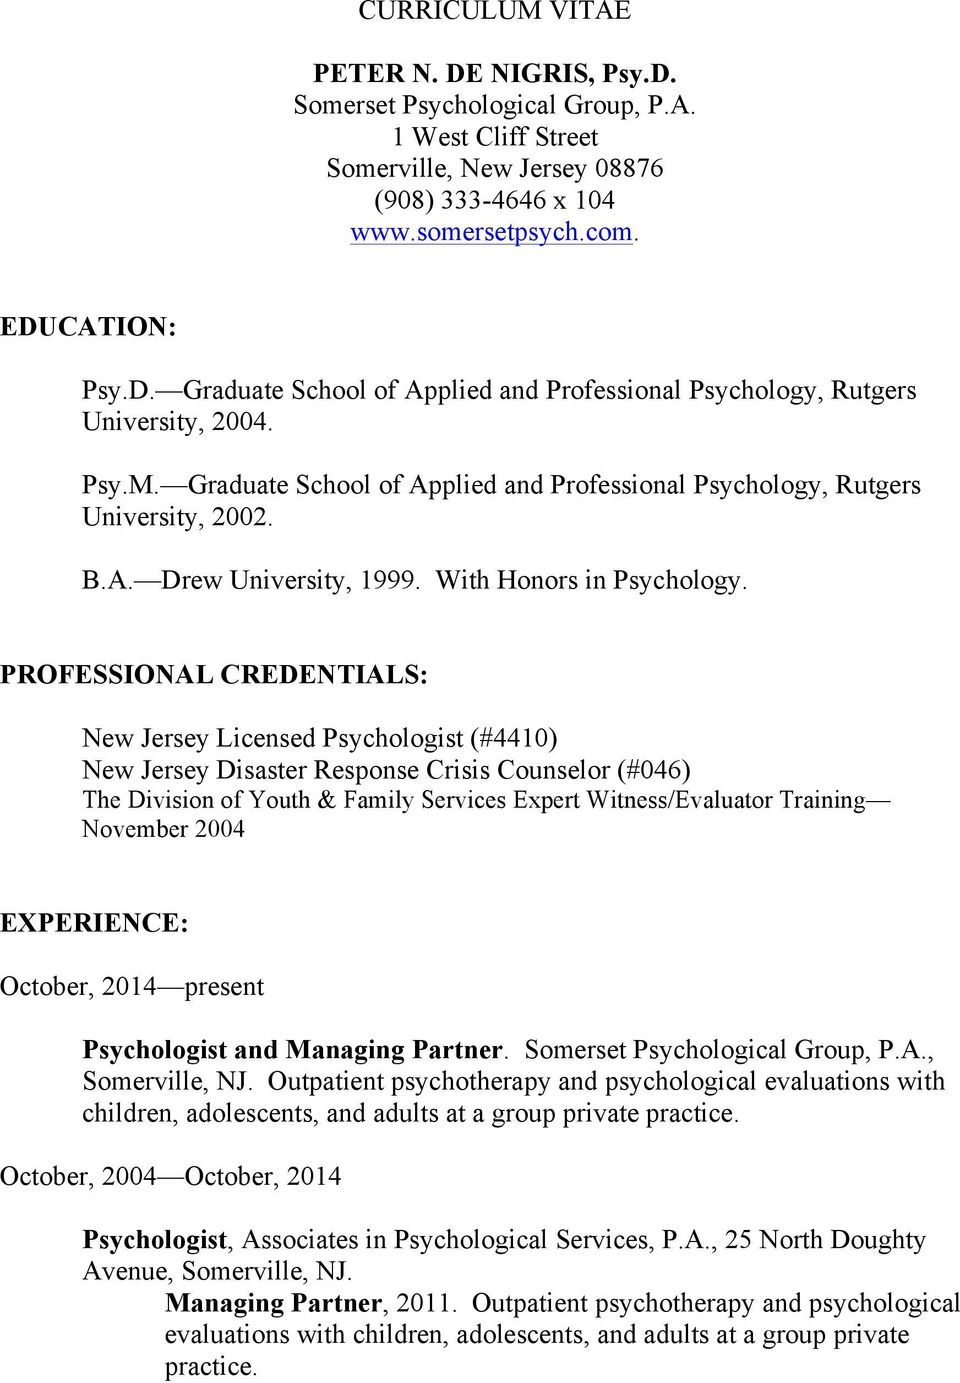 PROFESSIONAL CREDENTIALS: New Jersey Licensed Psychologist (#4410) New Jersey Disaster Response Crisis Counselor (#046) The Division of Youth & Family Services Expert Witness/Evaluator Training